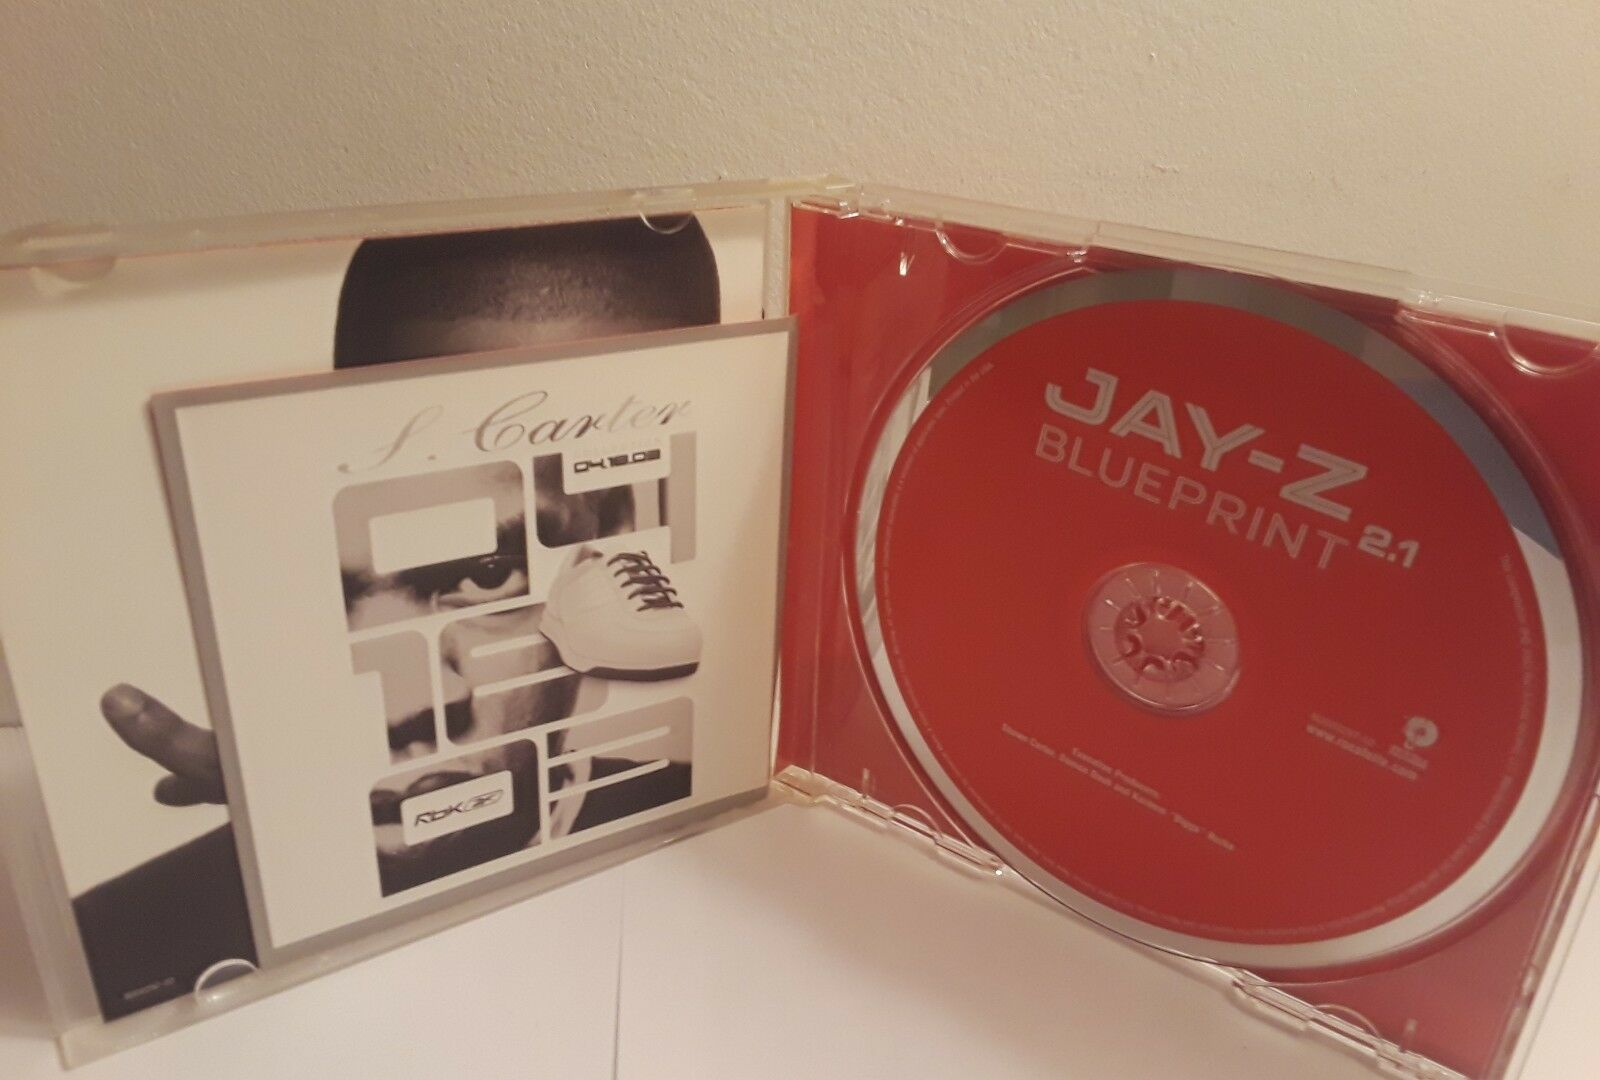 The blueprint 21 pa by jay z cd apr 2003 def jam usa ebay malvernweather Choice Image